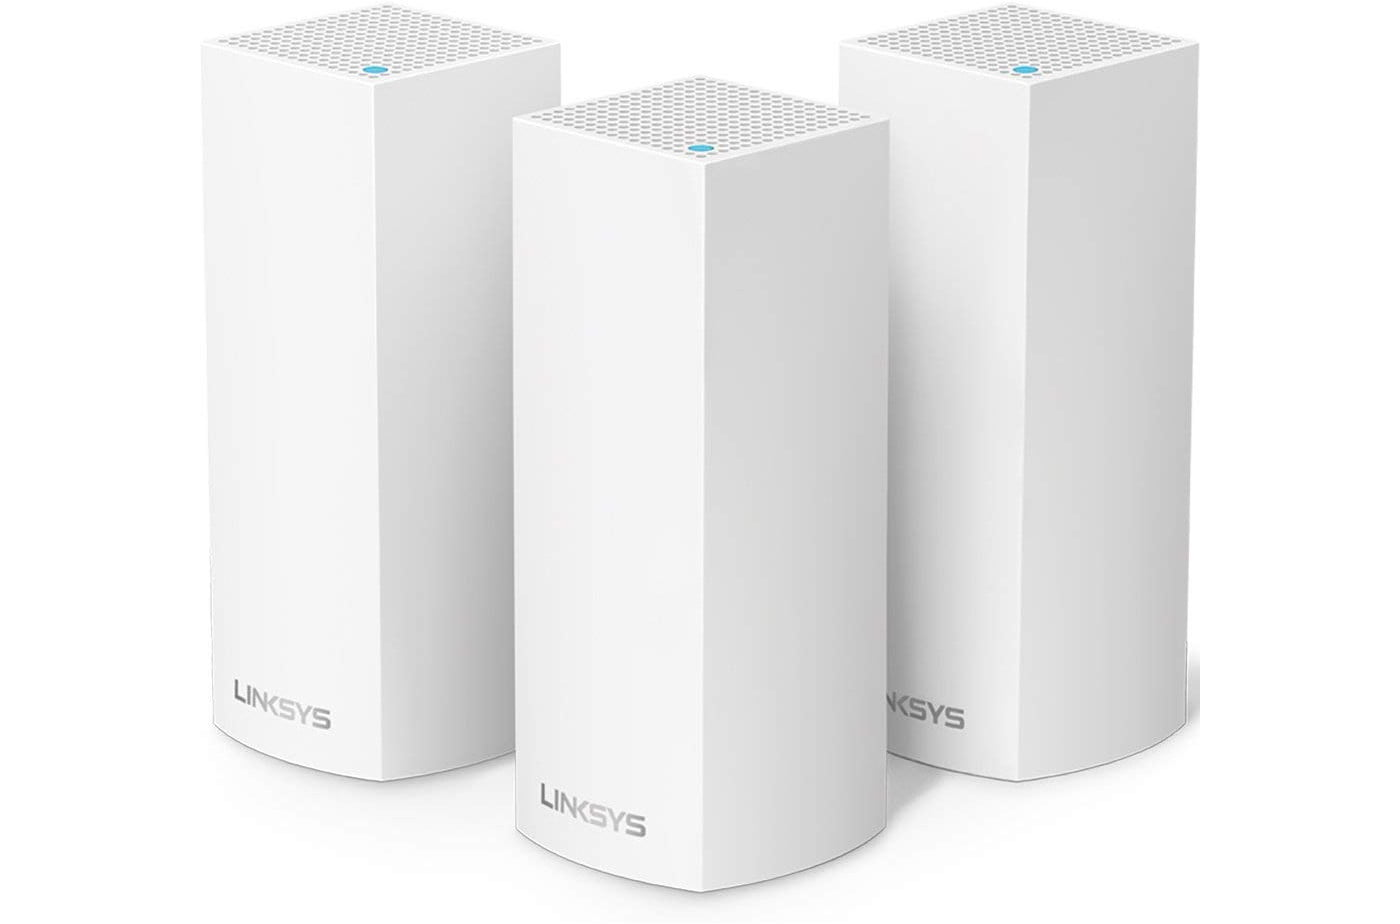 amazon slashes prices on linksys dual band and tri mesh wi fi routers velop home system  3 pack 01 1